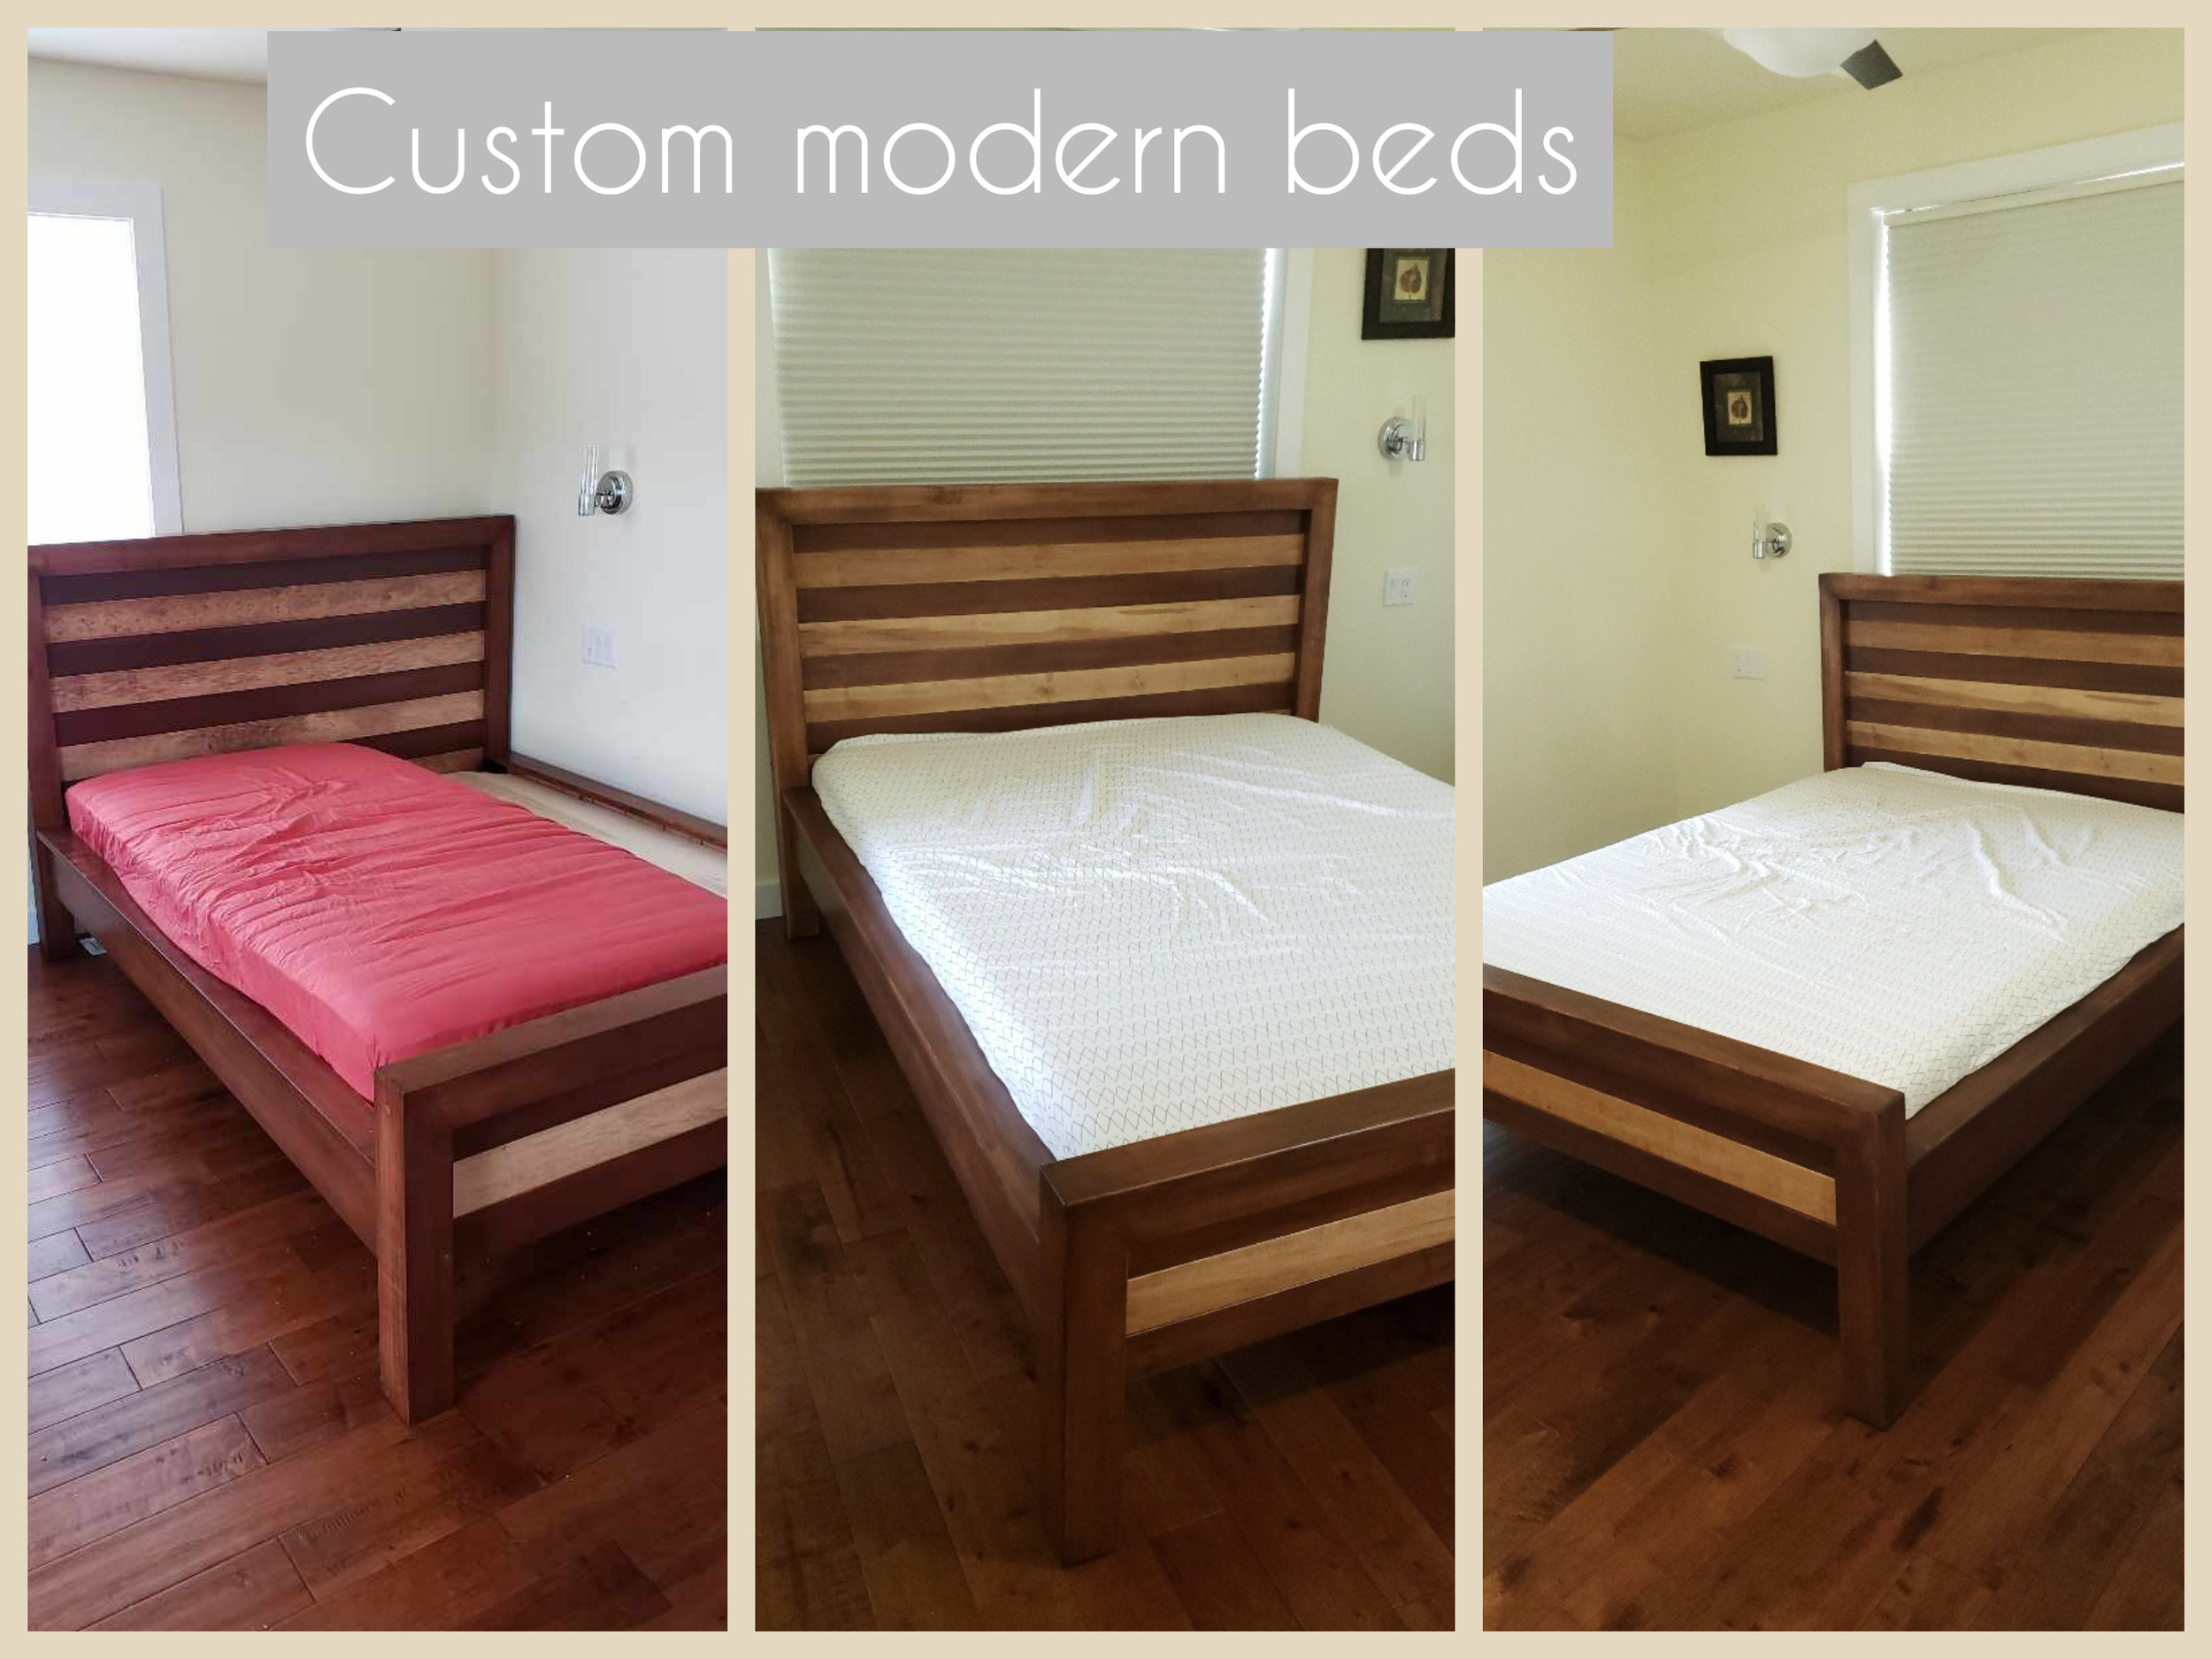 Custom beds - Modern, traditional, rustic, classic